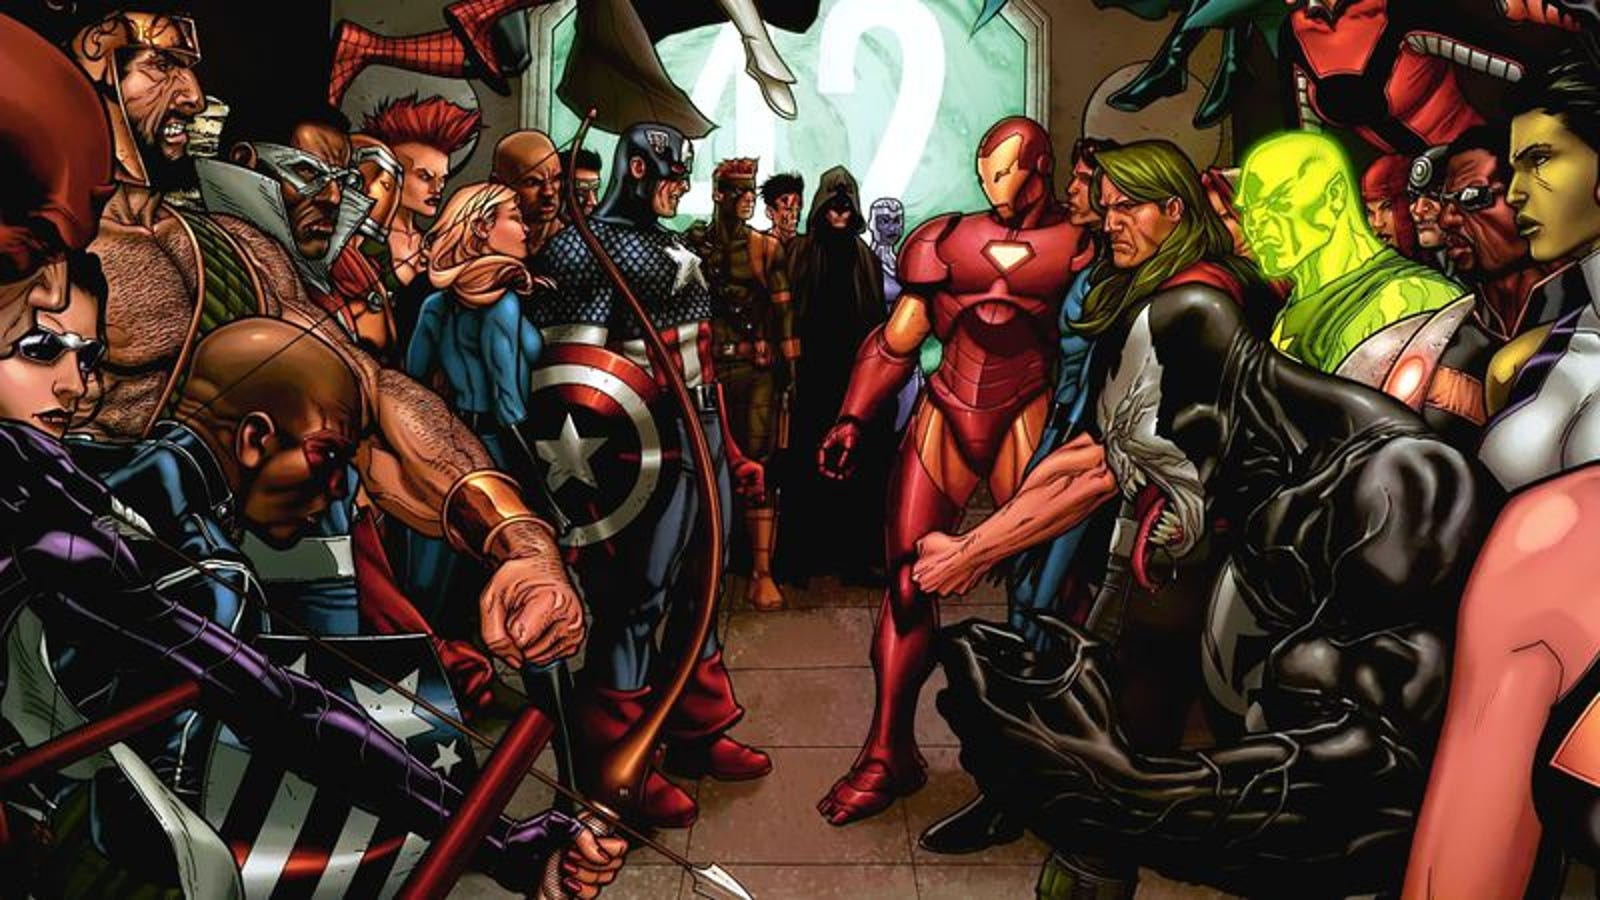 With Civil War, Marvel dusted off inane source material ...